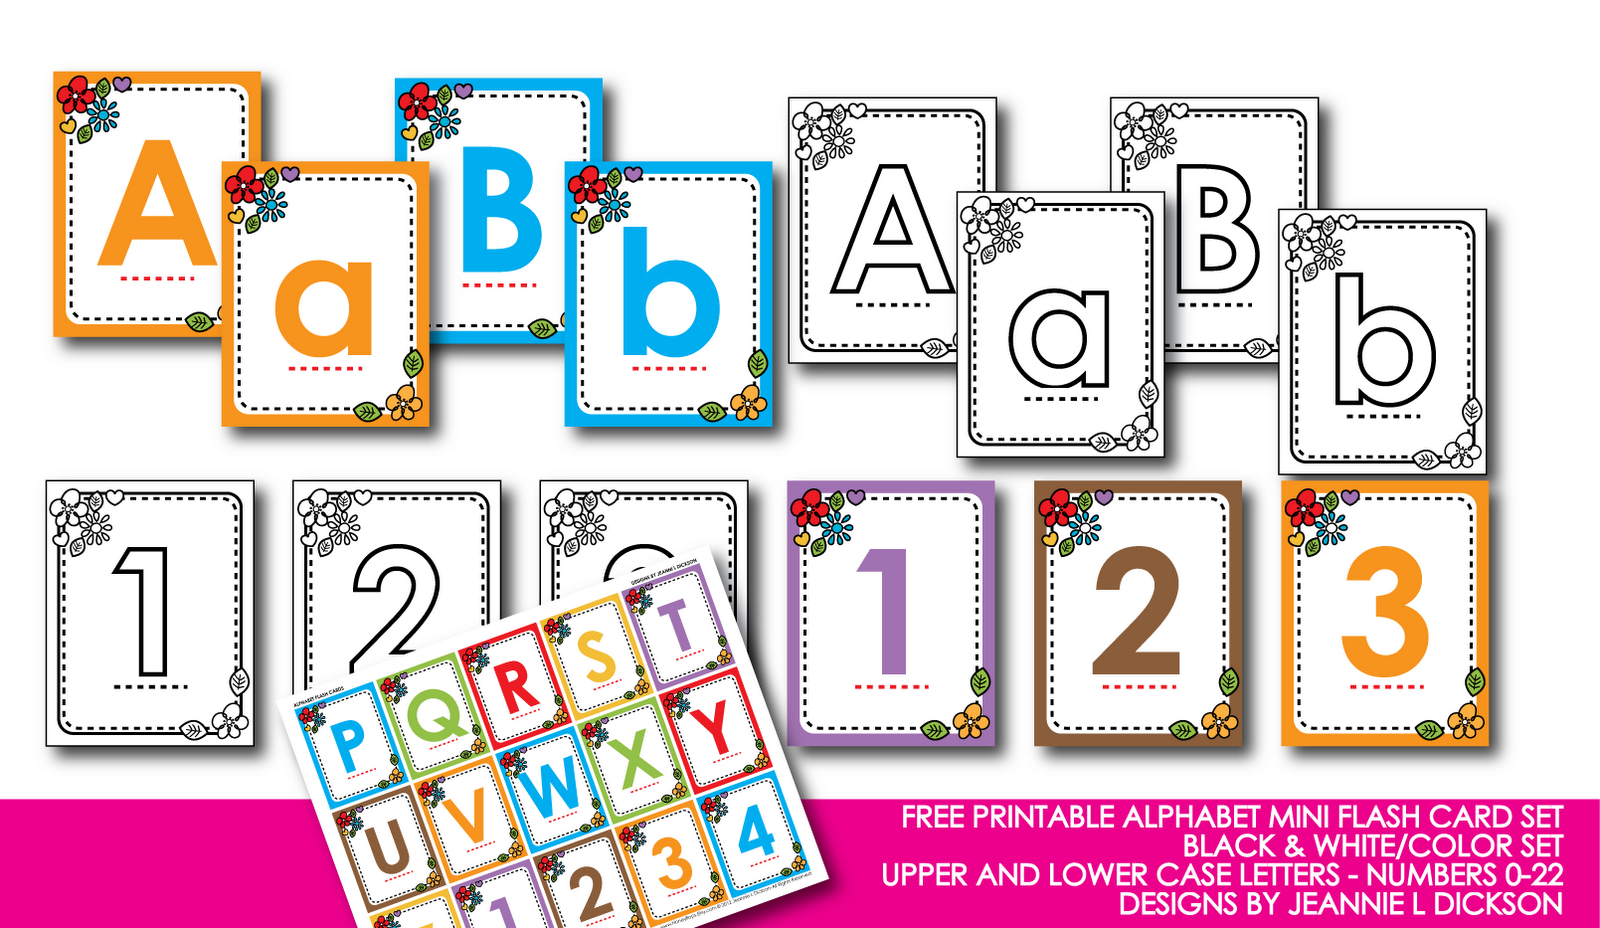 Kindergarten Alphabet Cards | Free Printable Alphabet Mini Flash - Free Printable Lower Case Letters Flashcards